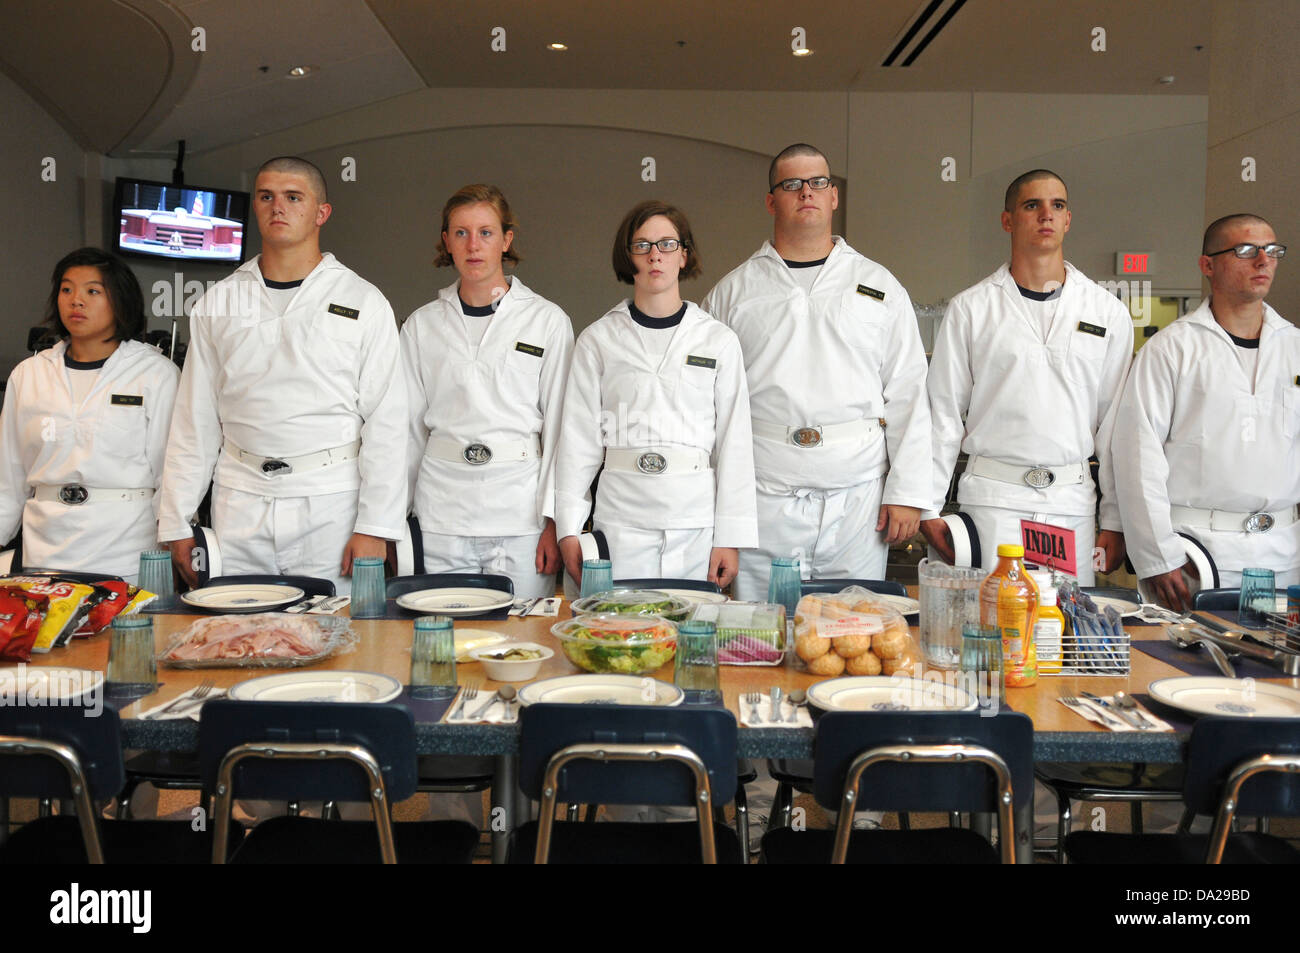 midshipmen from the us naval academy line up for a meal during stock